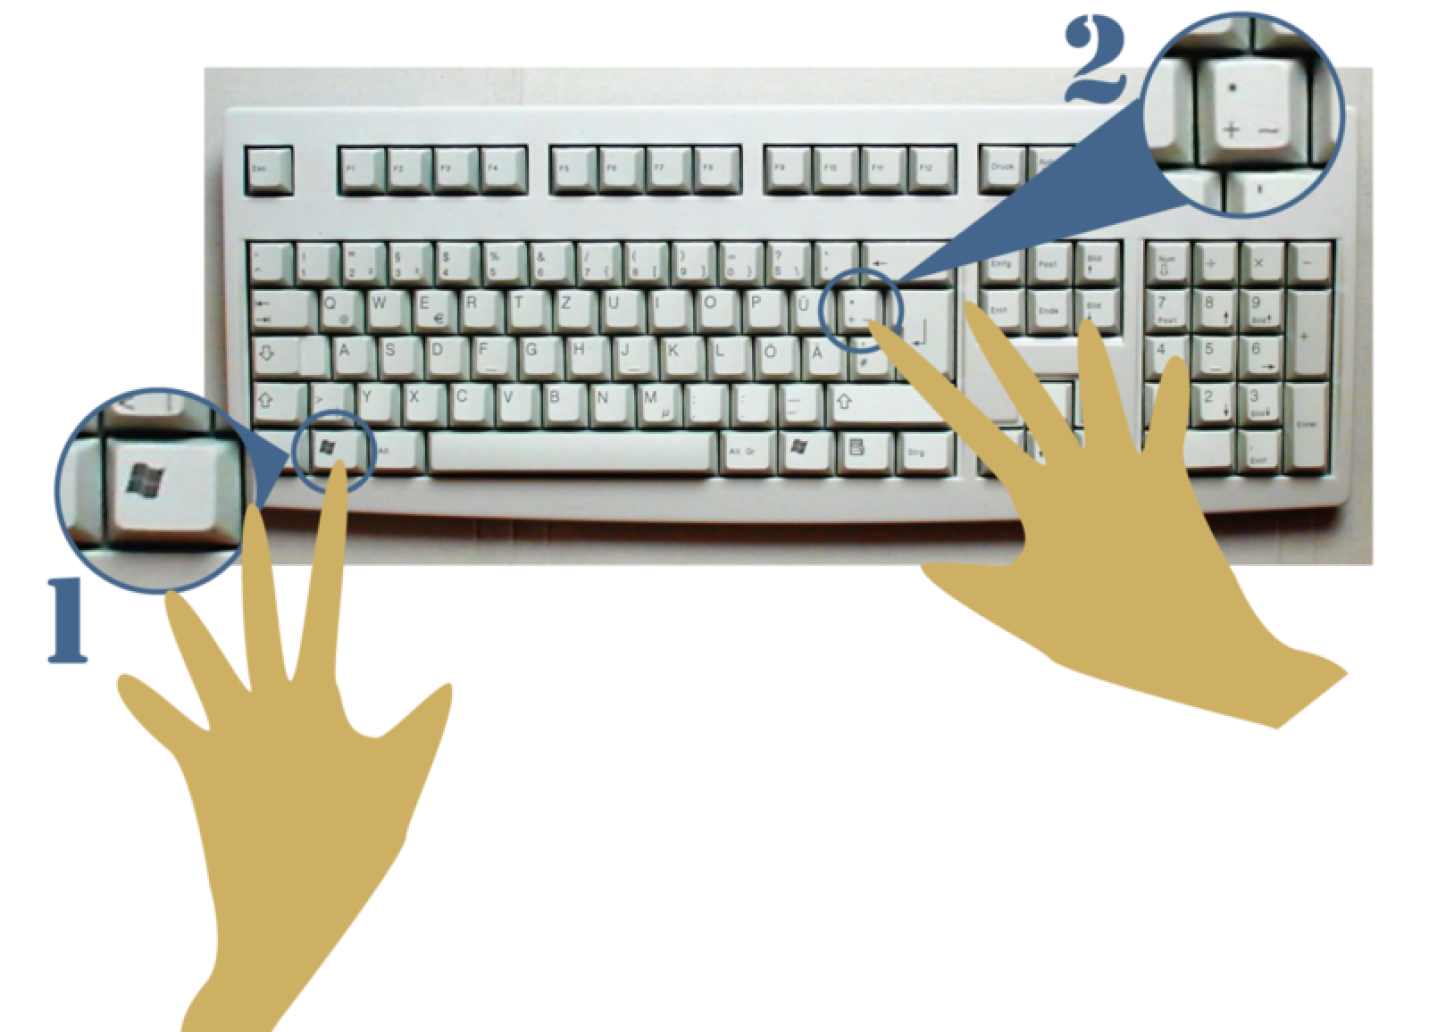 Graphic image showing a computer keyboard with two hands